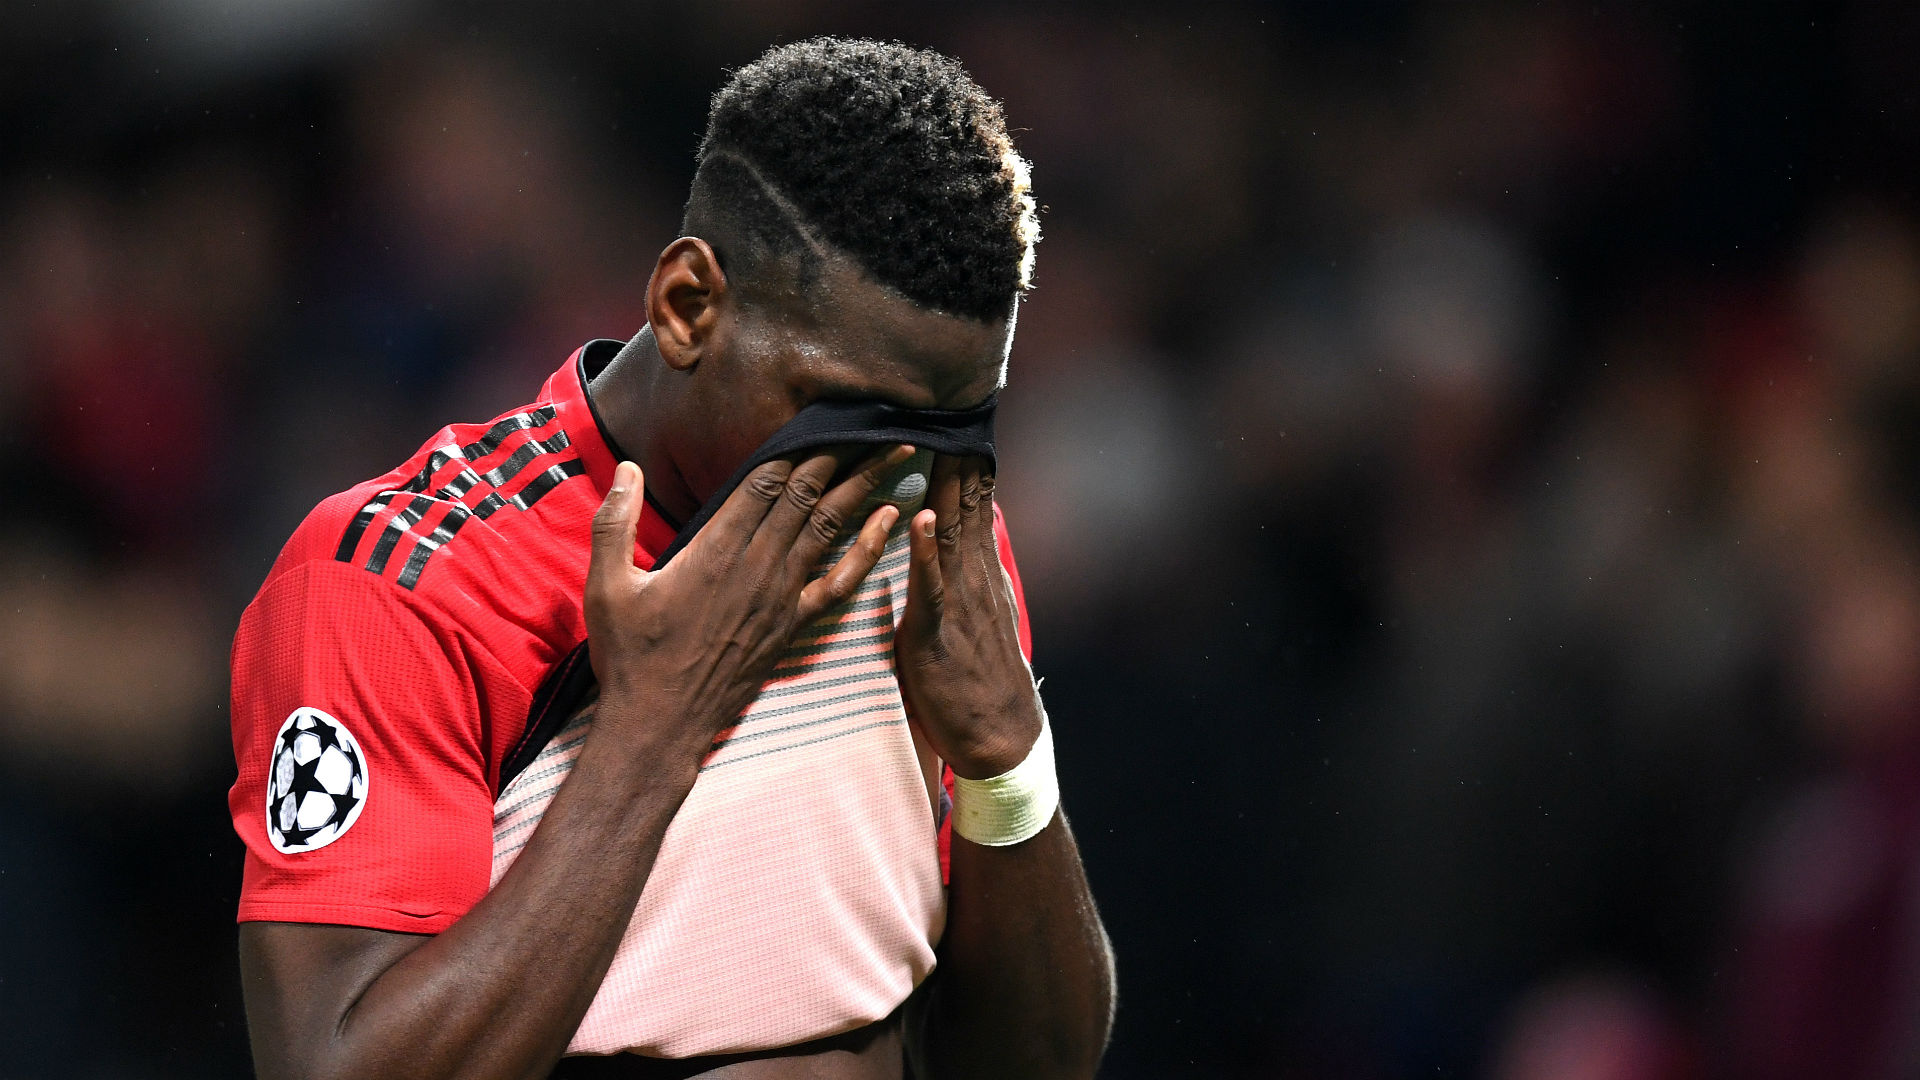 Jose Mourinho warns Paul Pogba to change his penalty-taking technique